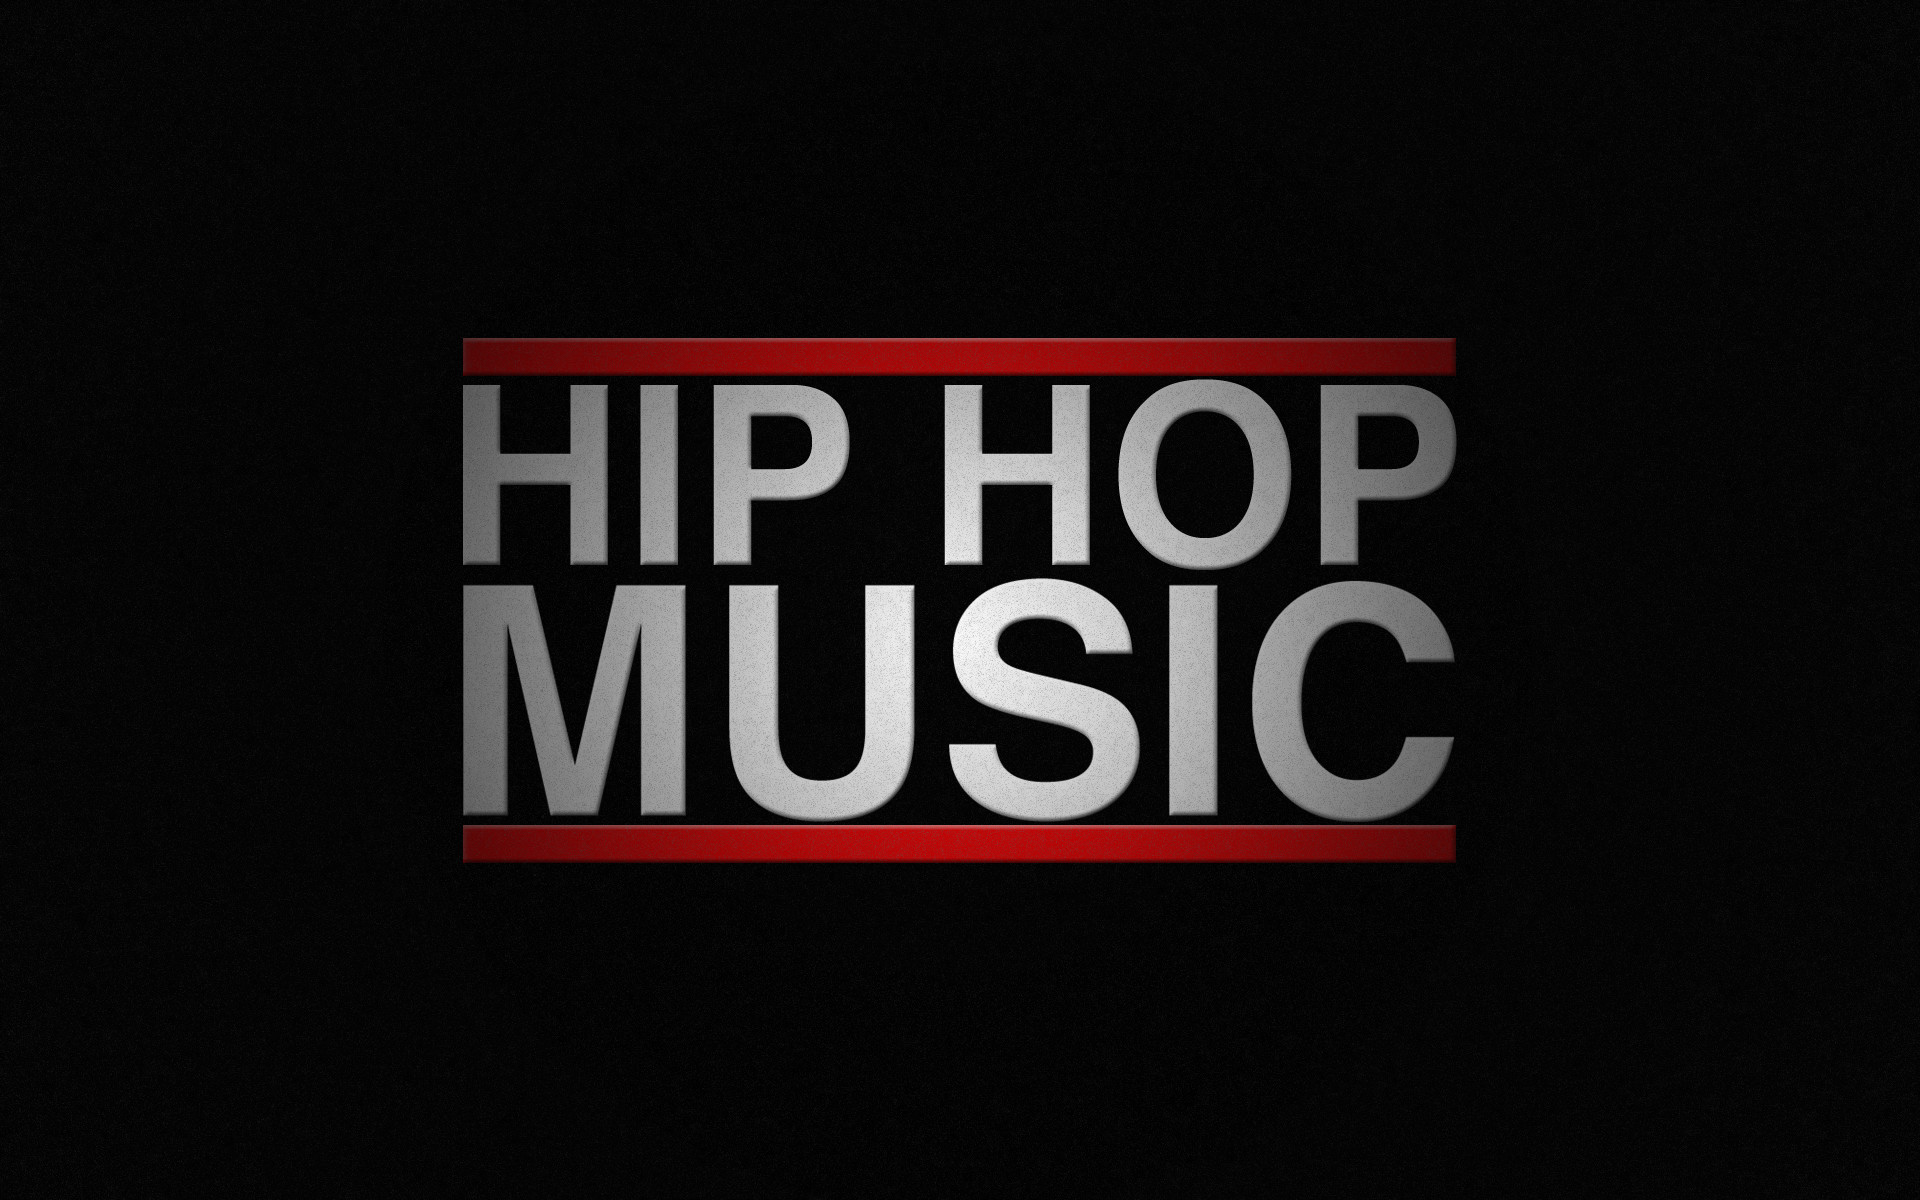 Good Wallpaper Music Logo - 1020312-download-rap-music-wallpapers-1920x1200-for-iphone-7  Pic_84851.jpg